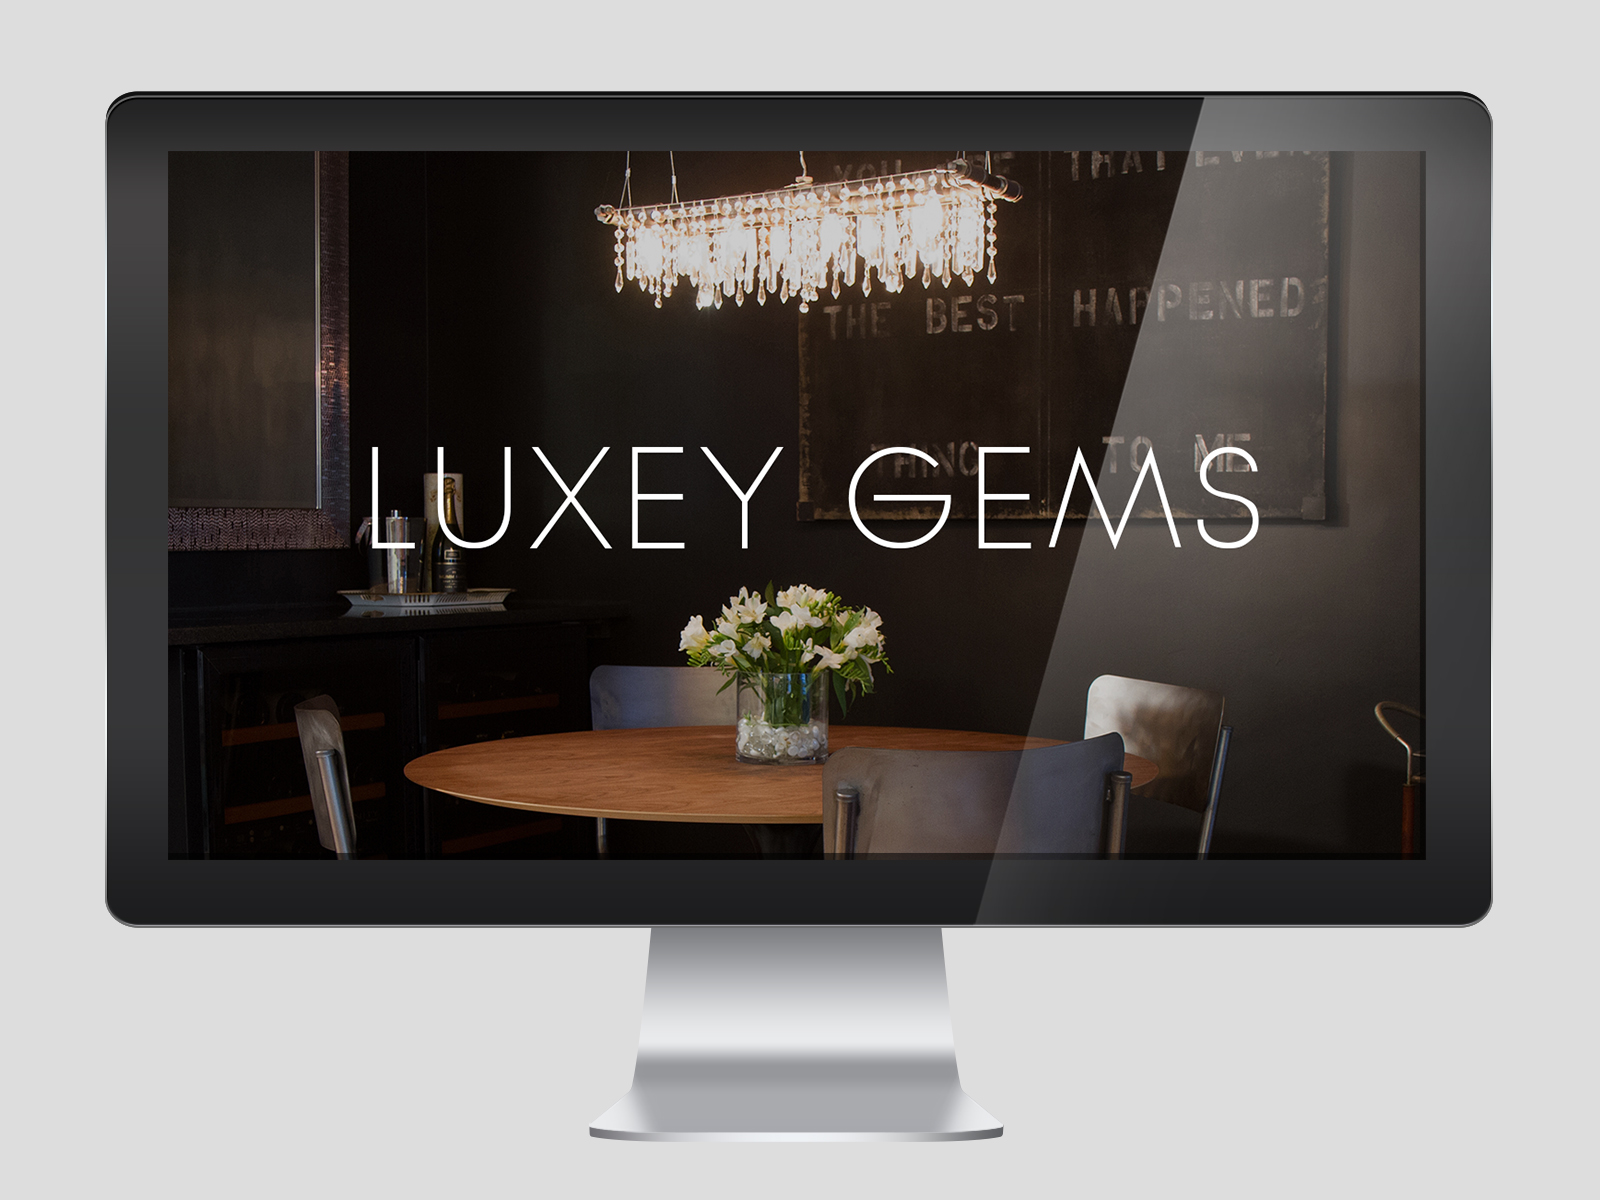 luxeygems_featured